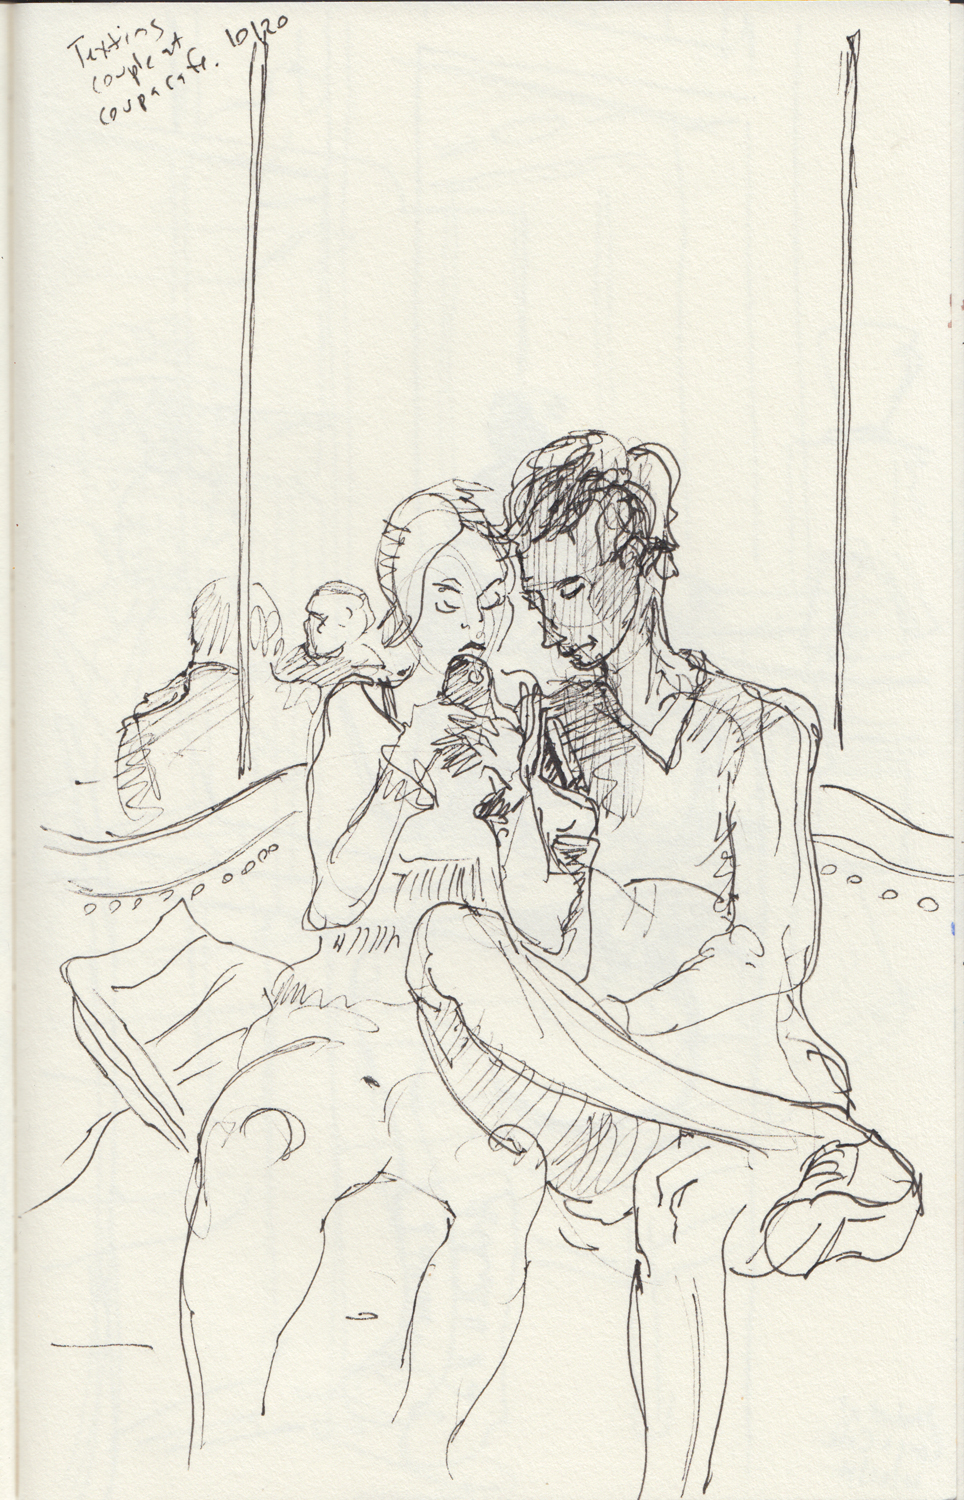 2014 - 10 - 20 - sketchbook - texting kids at coupa.jpg